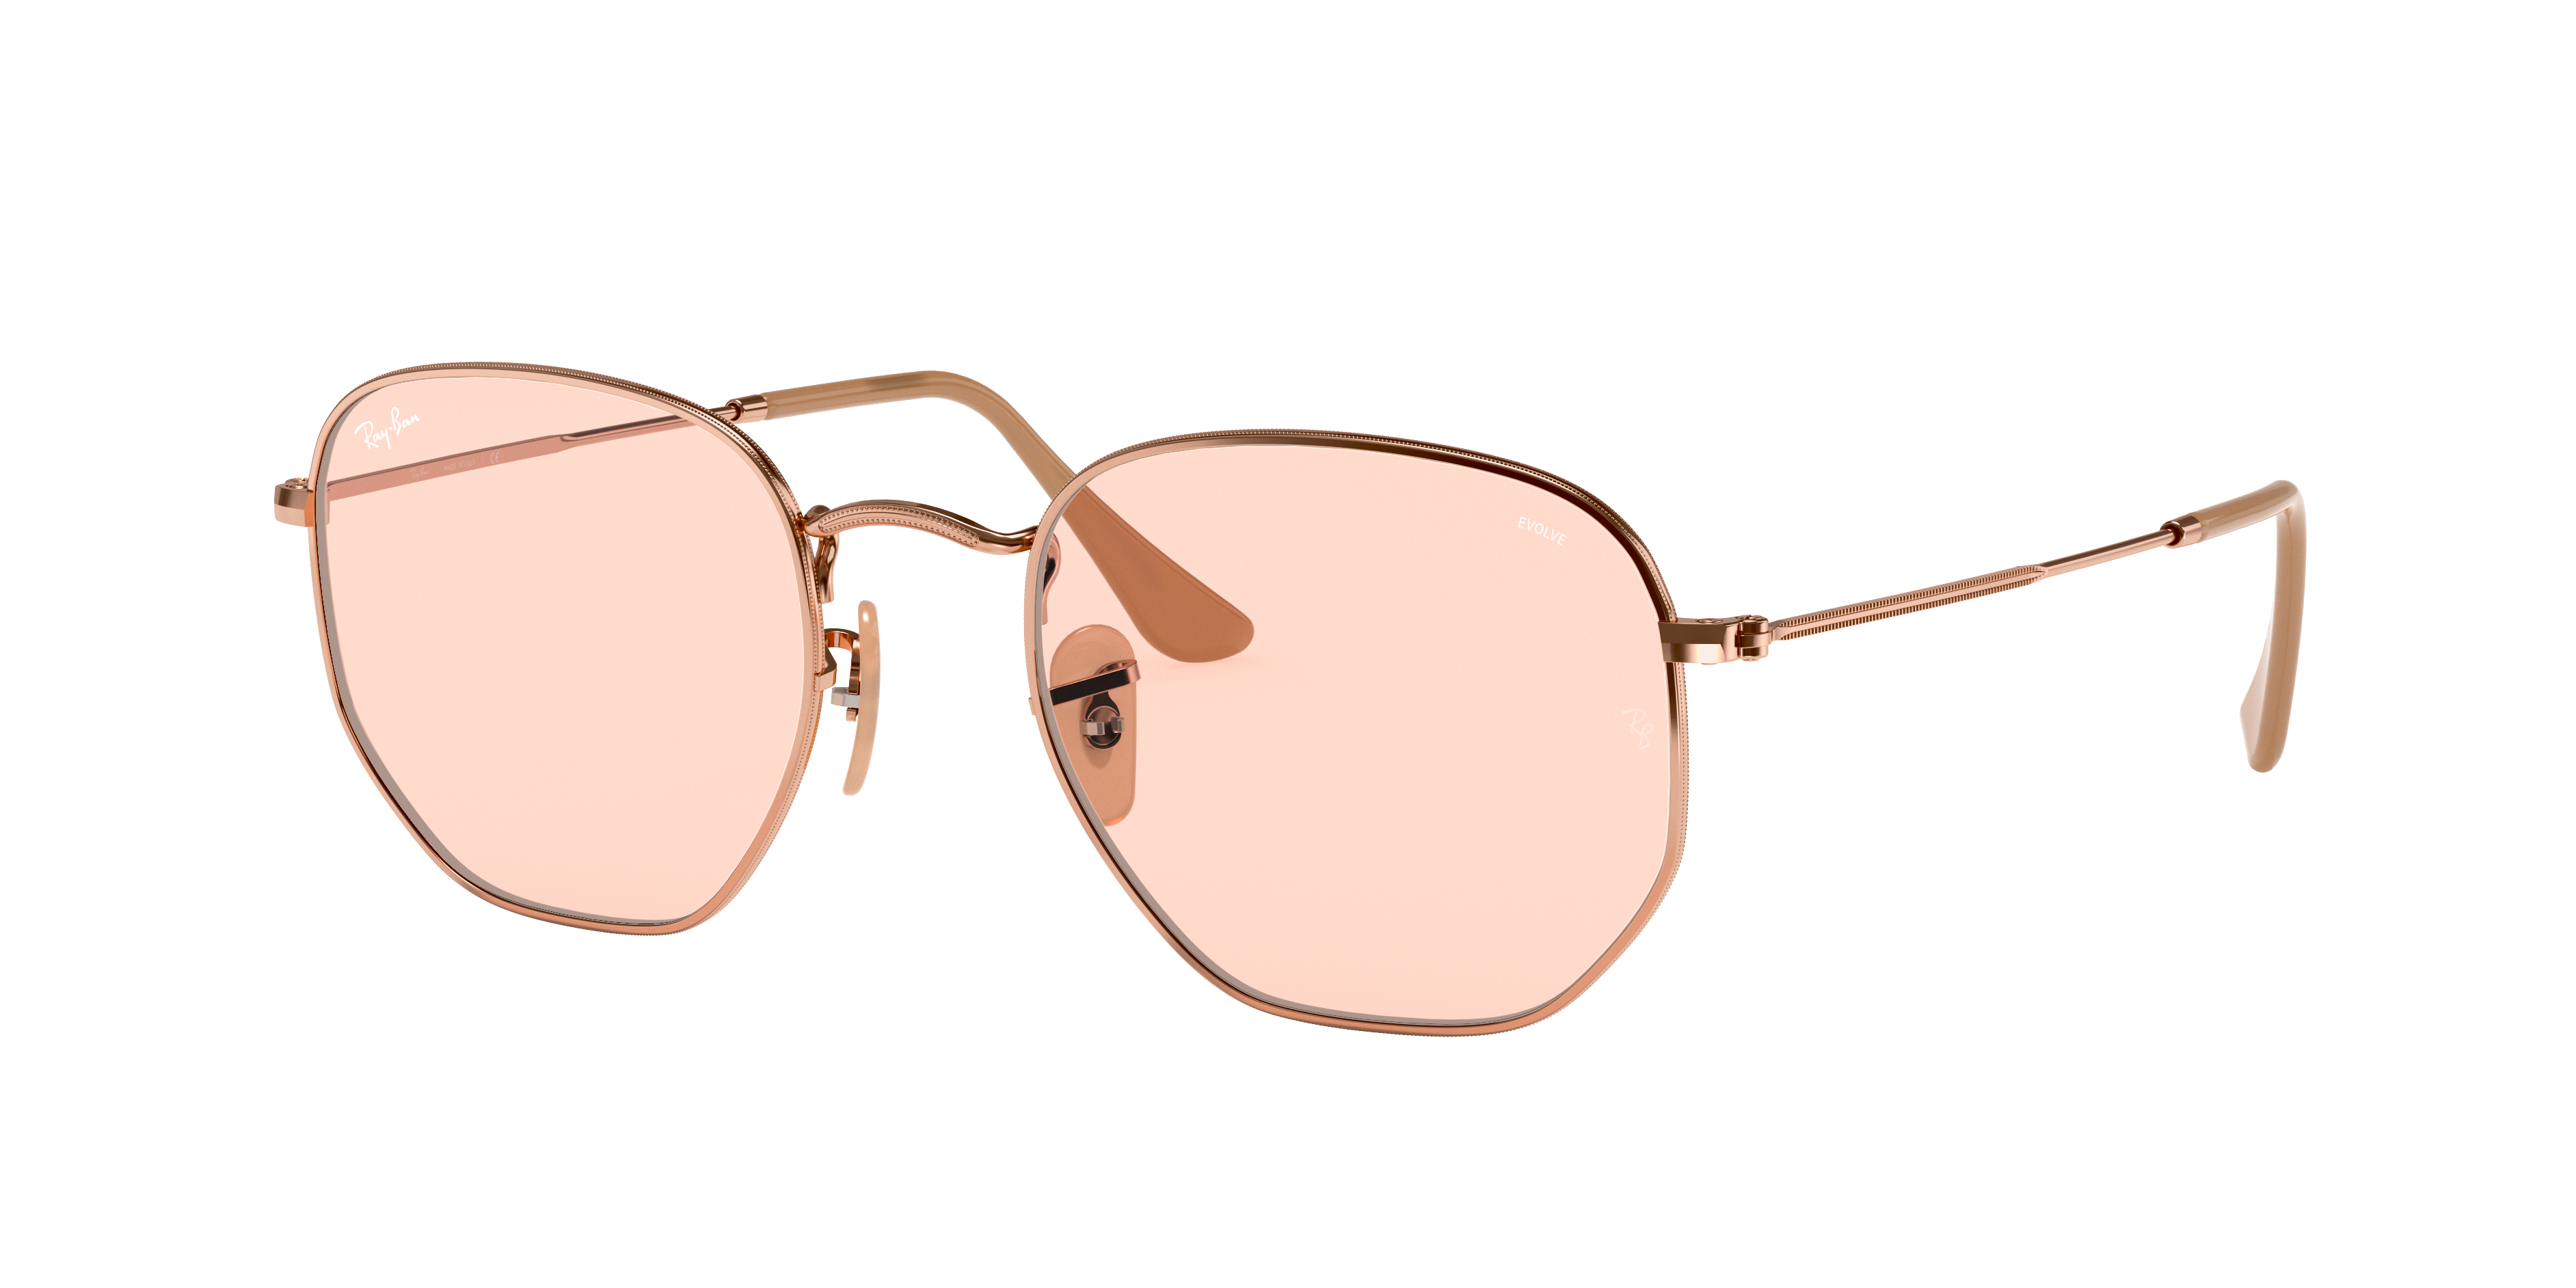 Ray-Ban Hexagonal Washed Evolve Bronze-Copper, Pink Lenses - RB3548N